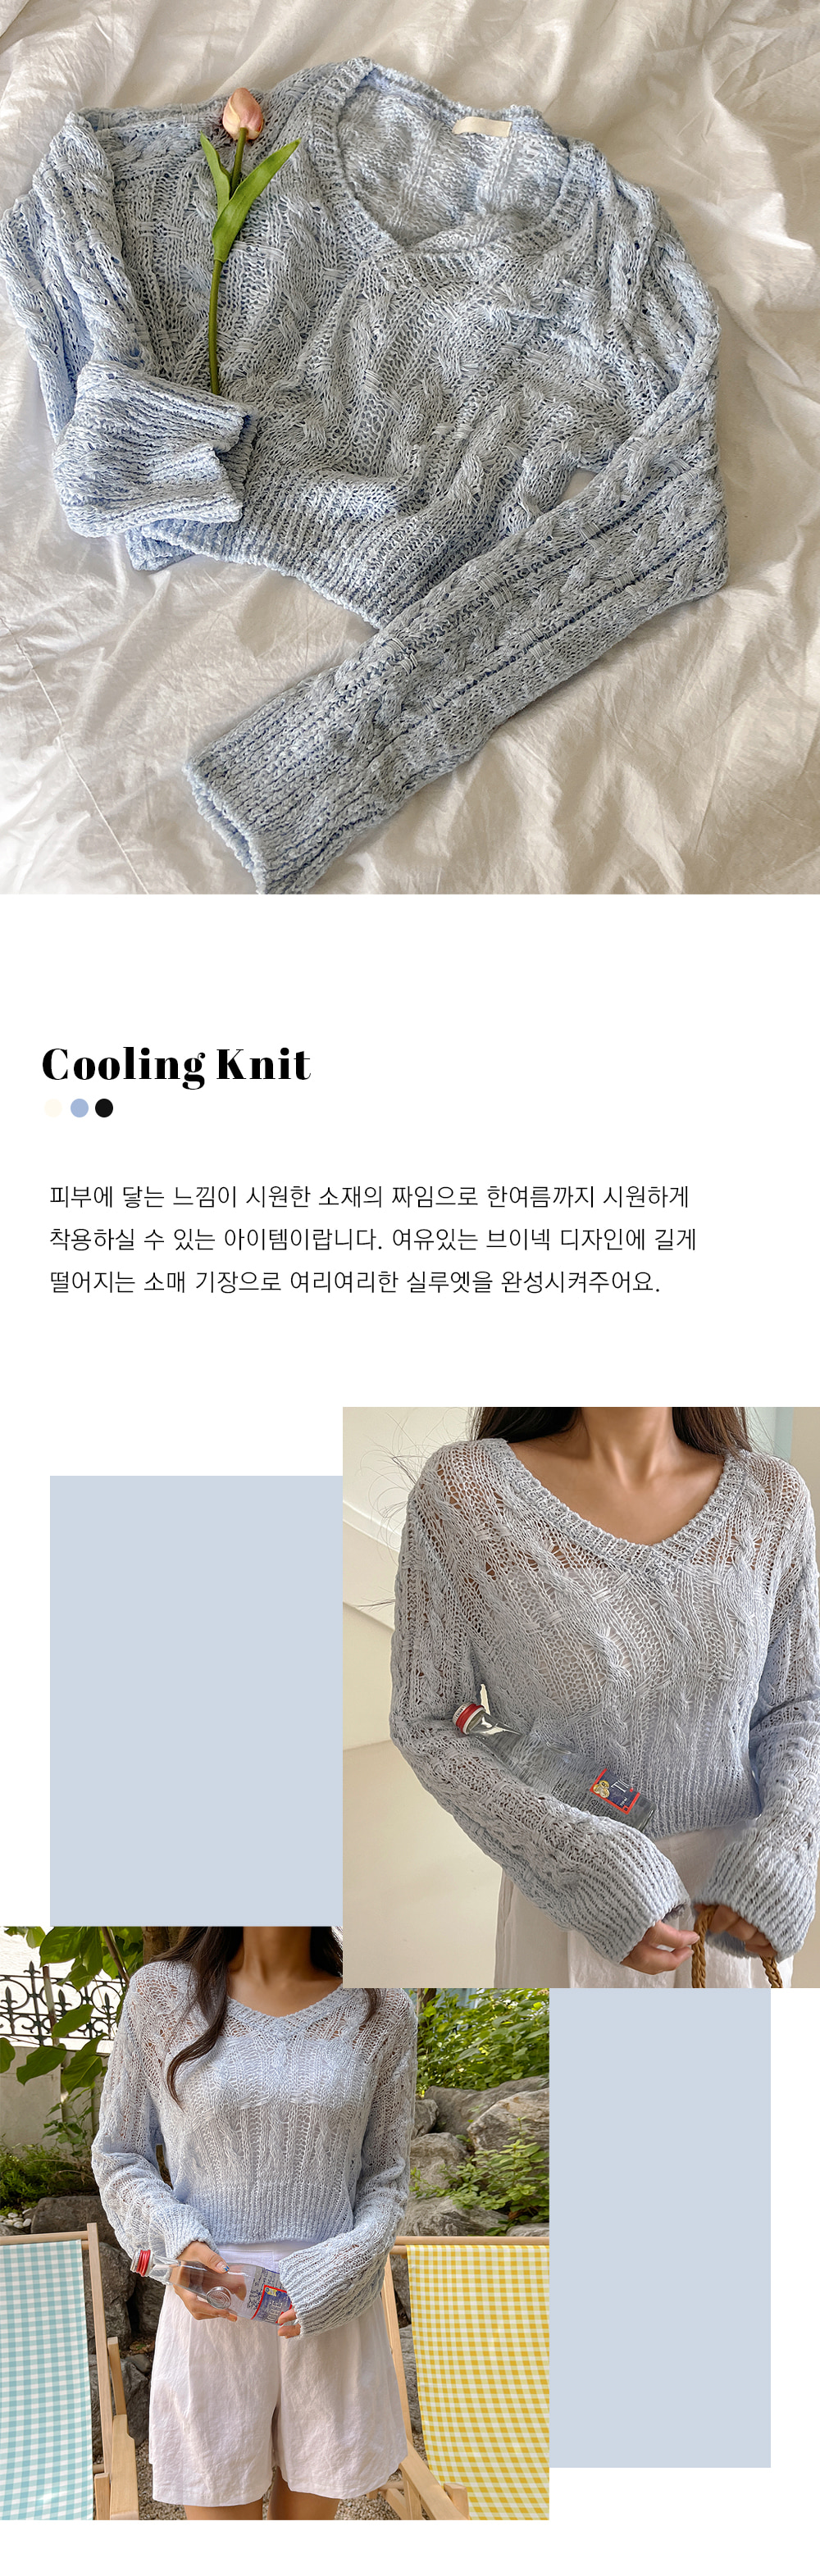 Typing Cooling Knitwear